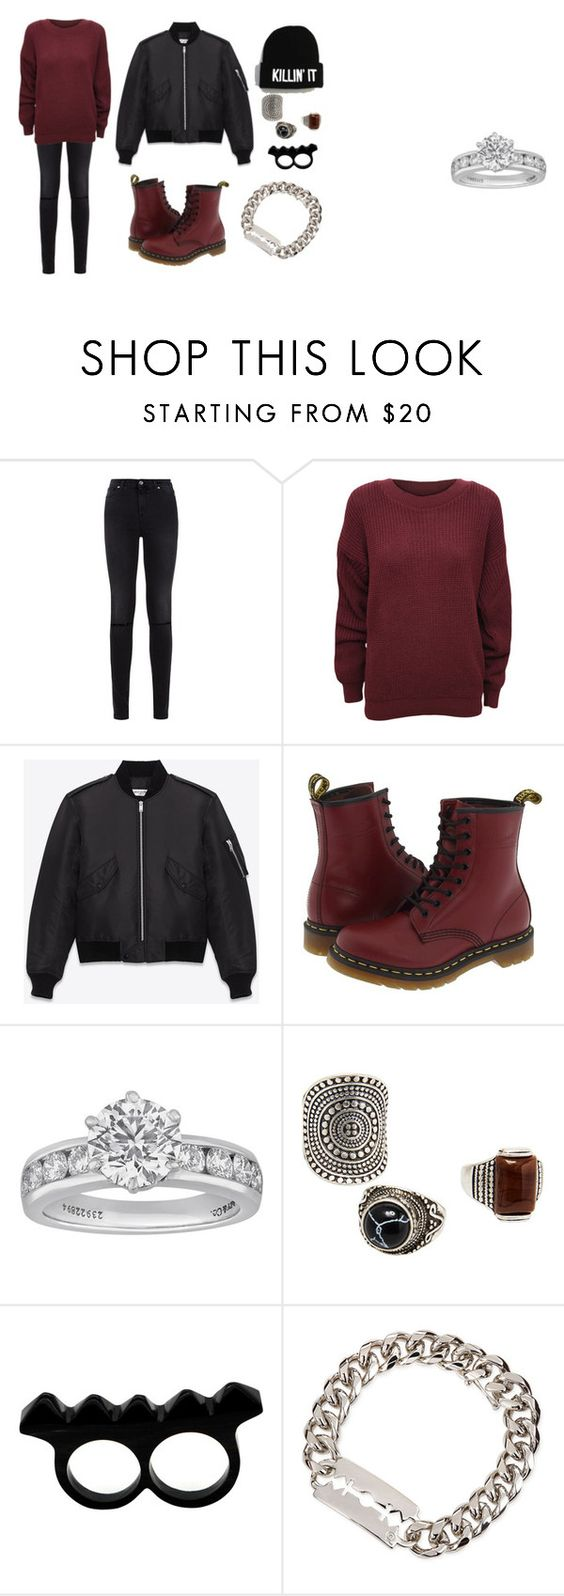 """Evie #13"" by eviewillowmeyer on Polyvore featuring moda, 7 For All Mankind, WearAll, Yves Saint Laurent, Dr. Martens, Tiffany & Co., MANGO, L'Artisan Créateur e McQ by Alexander McQueen"